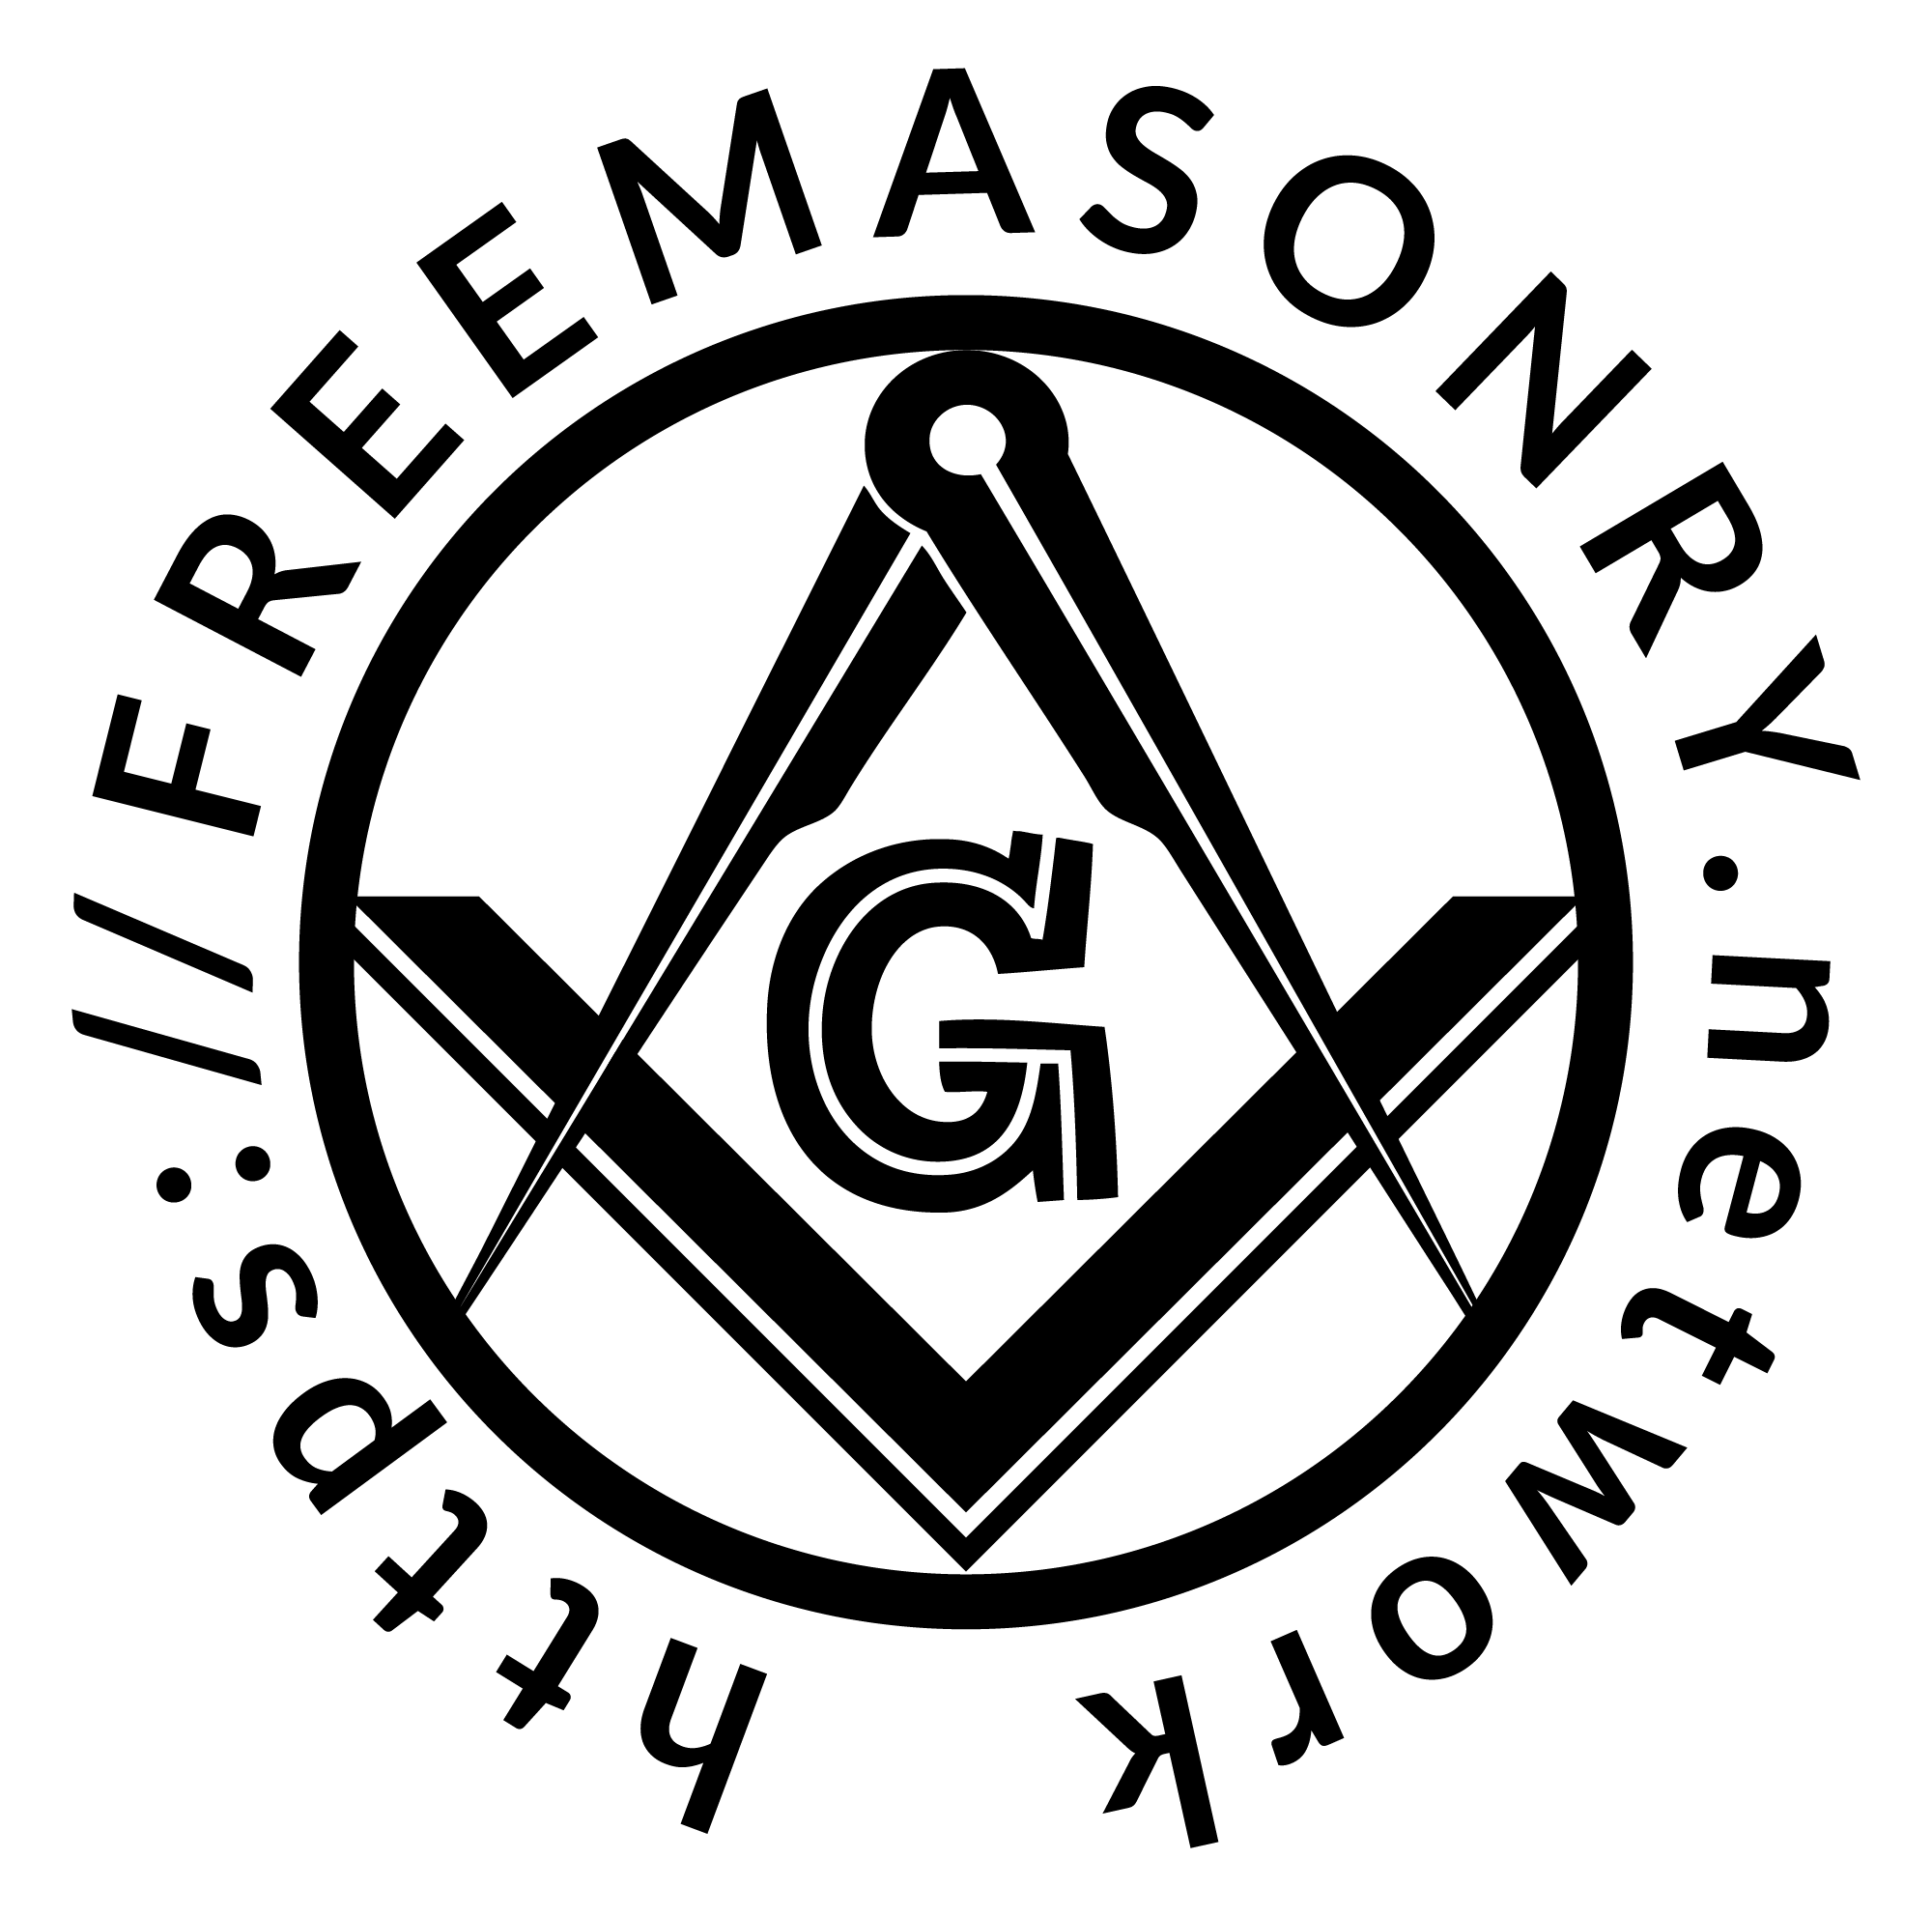 MASONIC AUTHORITIES